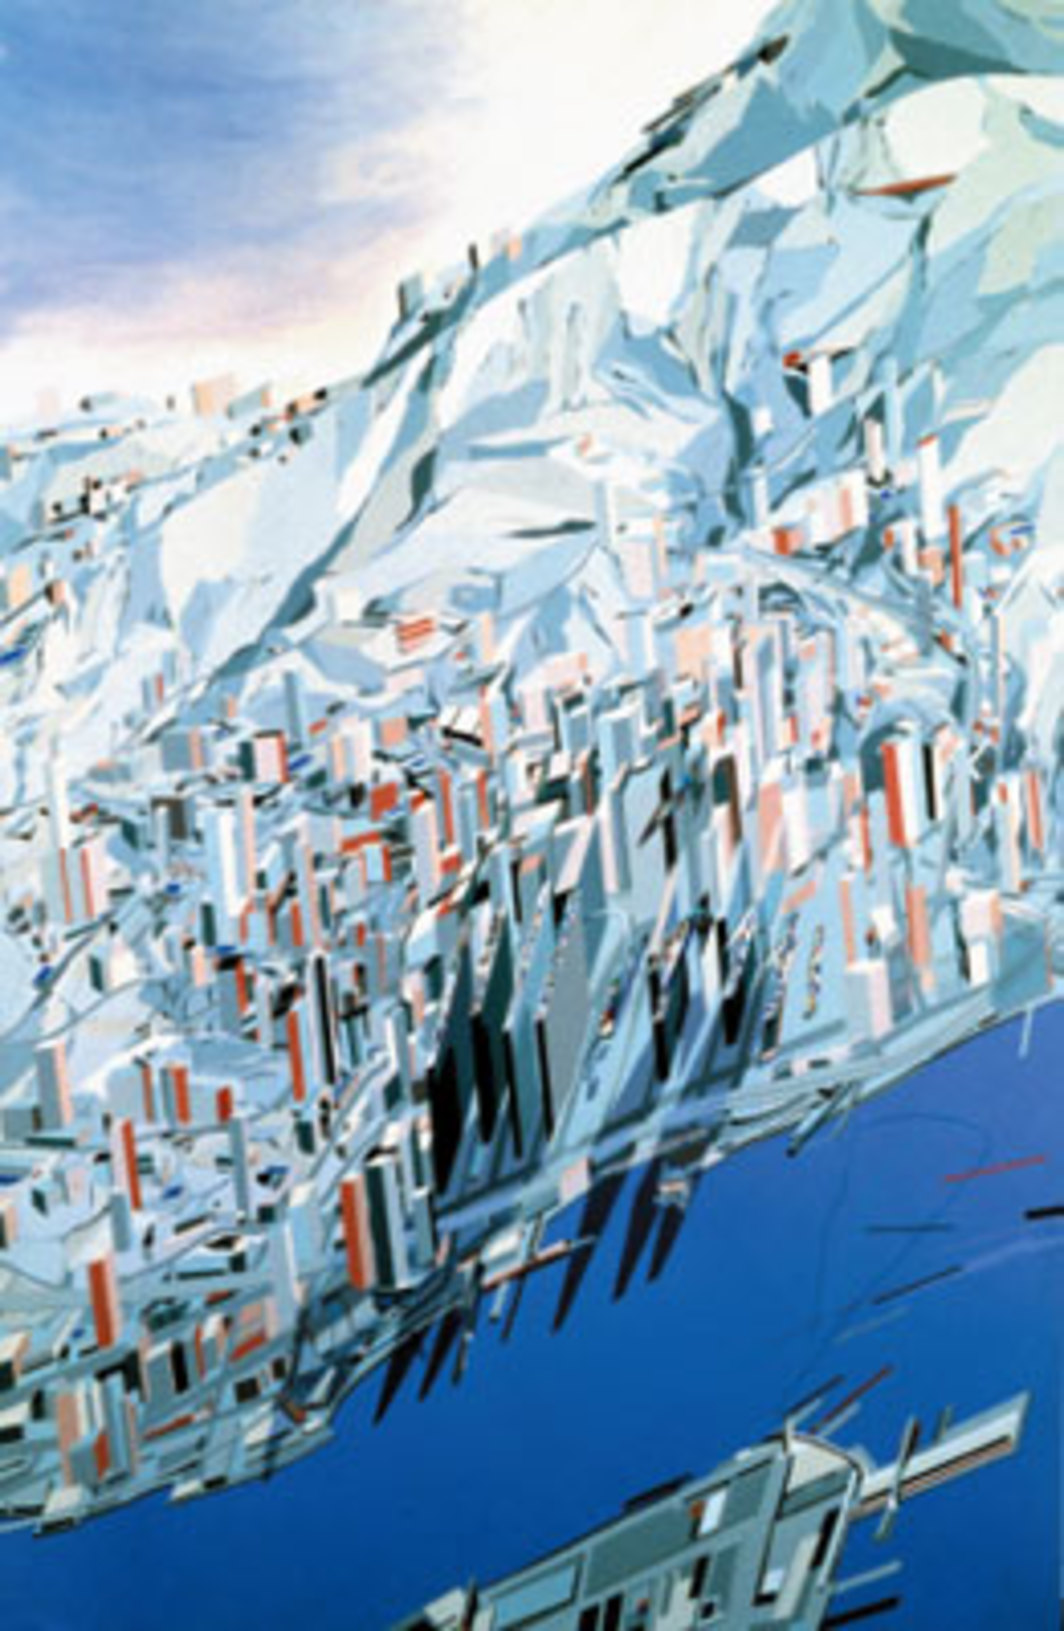 "Zaha Hadid, The Peak: Blue Slabs, 1983, acrylic on paper, 111 x 72 1/6"". From the project The Peak, Hong Kong, 1982–83."